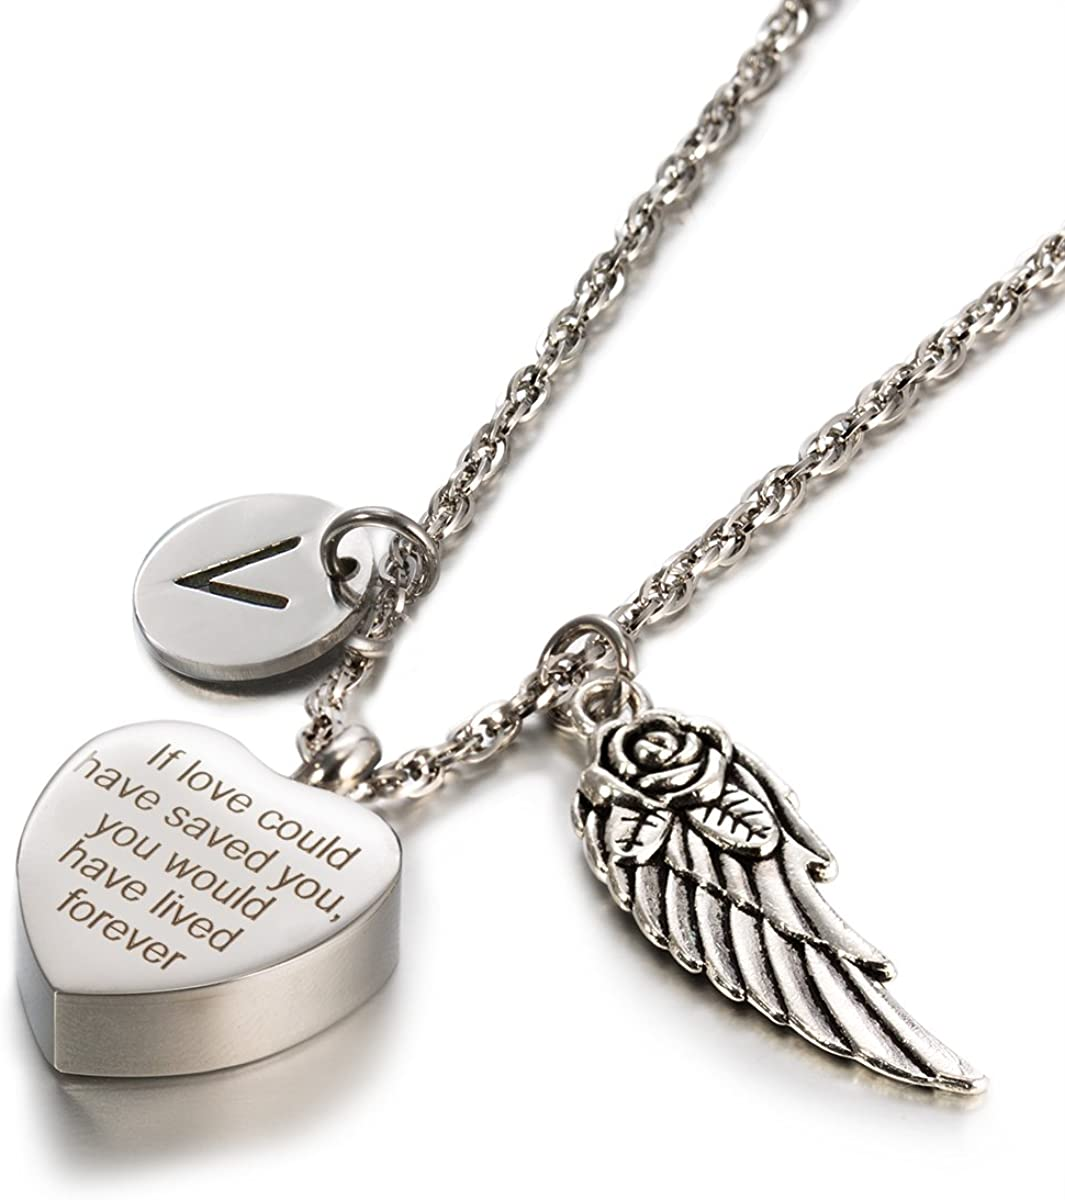 Glimkis Cremation Jewelry U Wouldve Lived Forever Ash Locket Memorial Necklace /& Intial